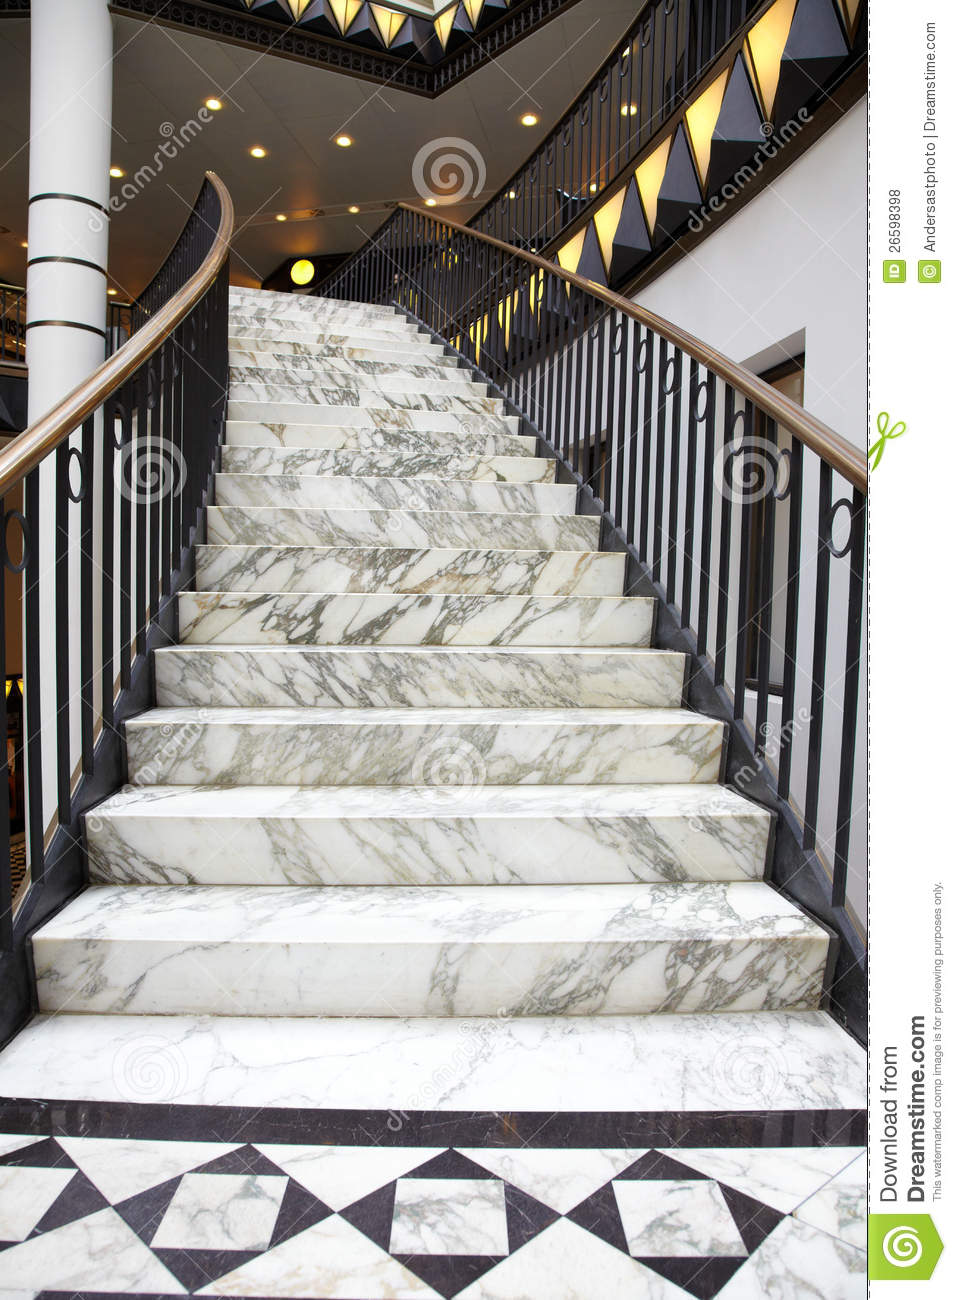 white marble stair in luxury interior stock photo image 26598398. Black Bedroom Furniture Sets. Home Design Ideas